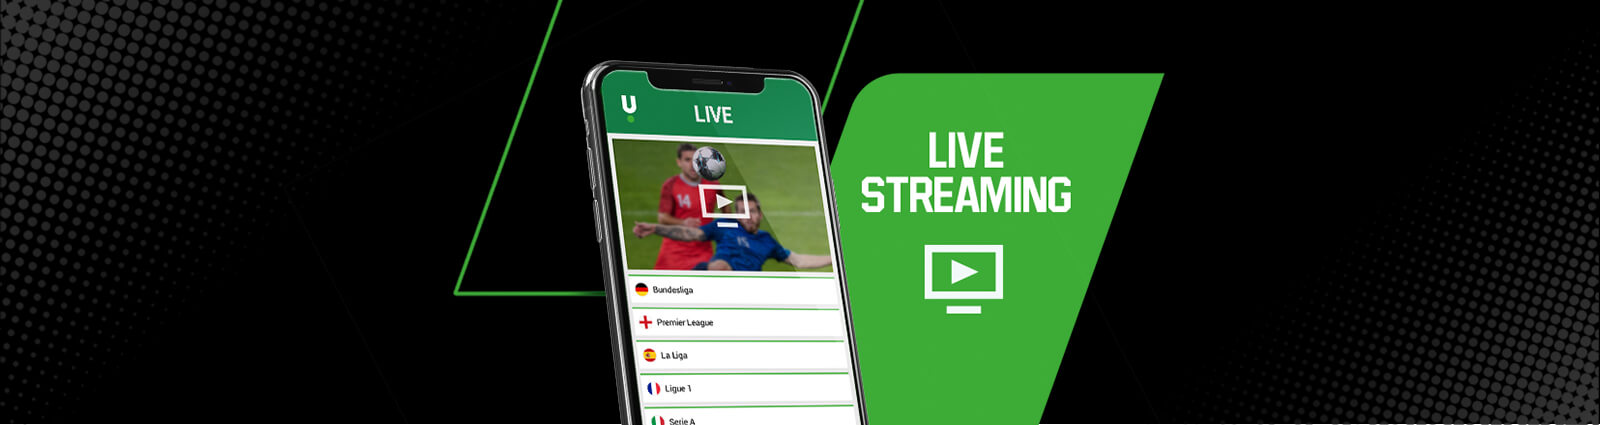 Promo page streaming games of the week BE un 2020